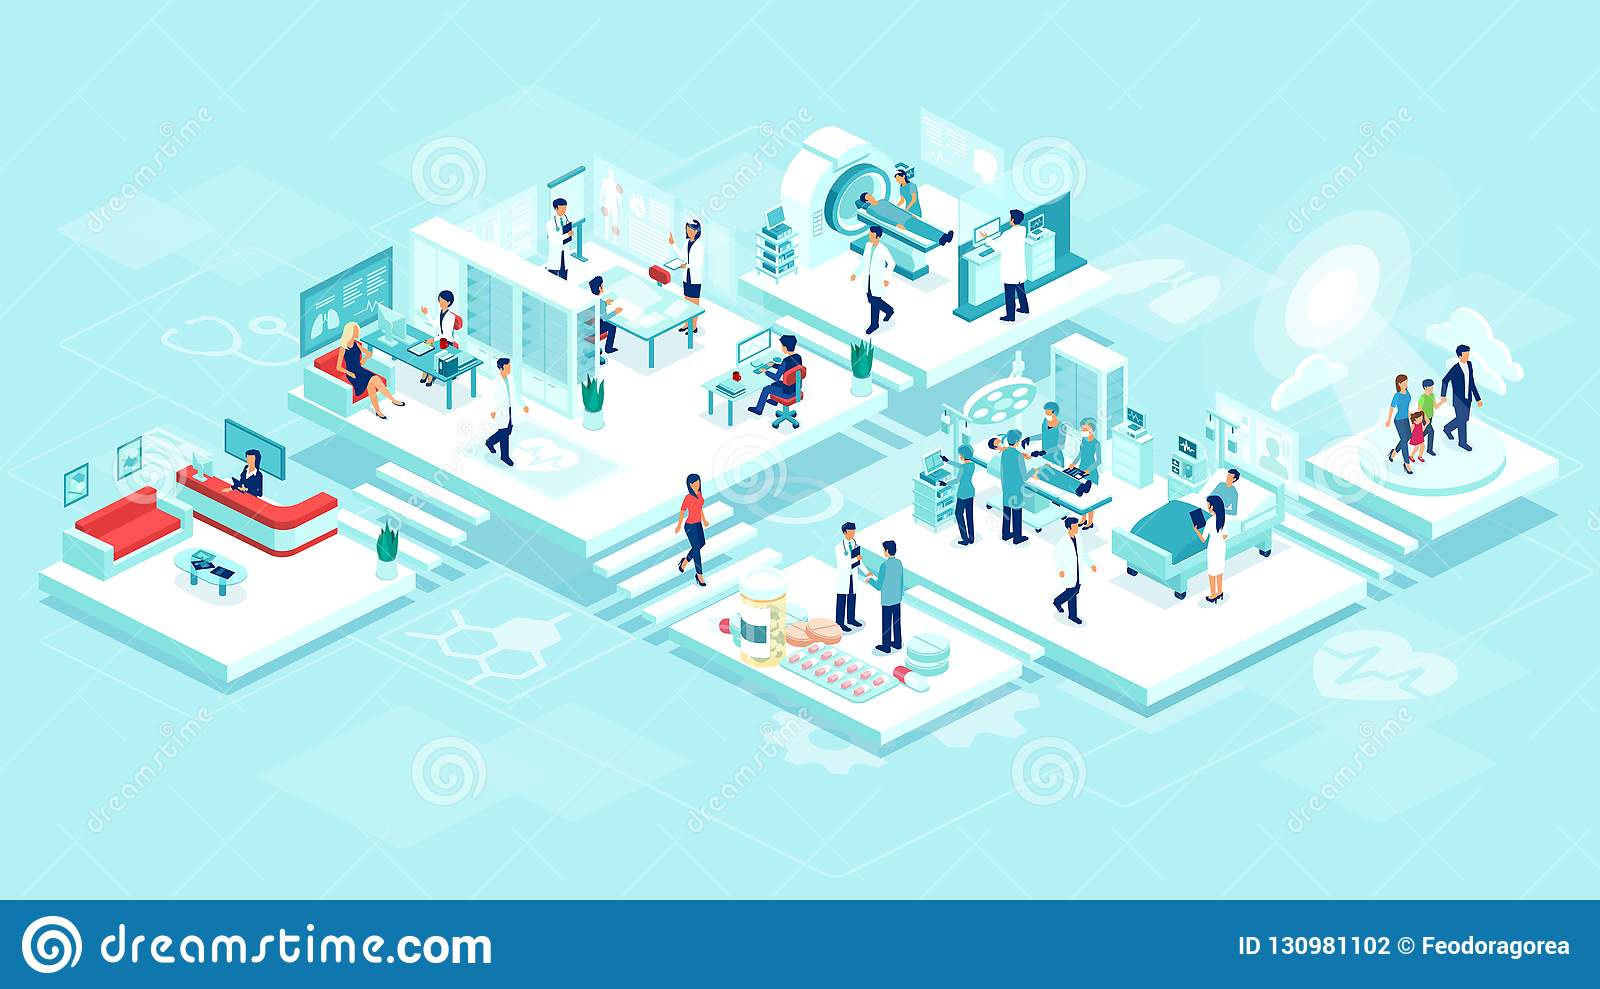 Isometric vector of a medical clinic hospital inpatient care with rooms, patients, doctors and nurses.